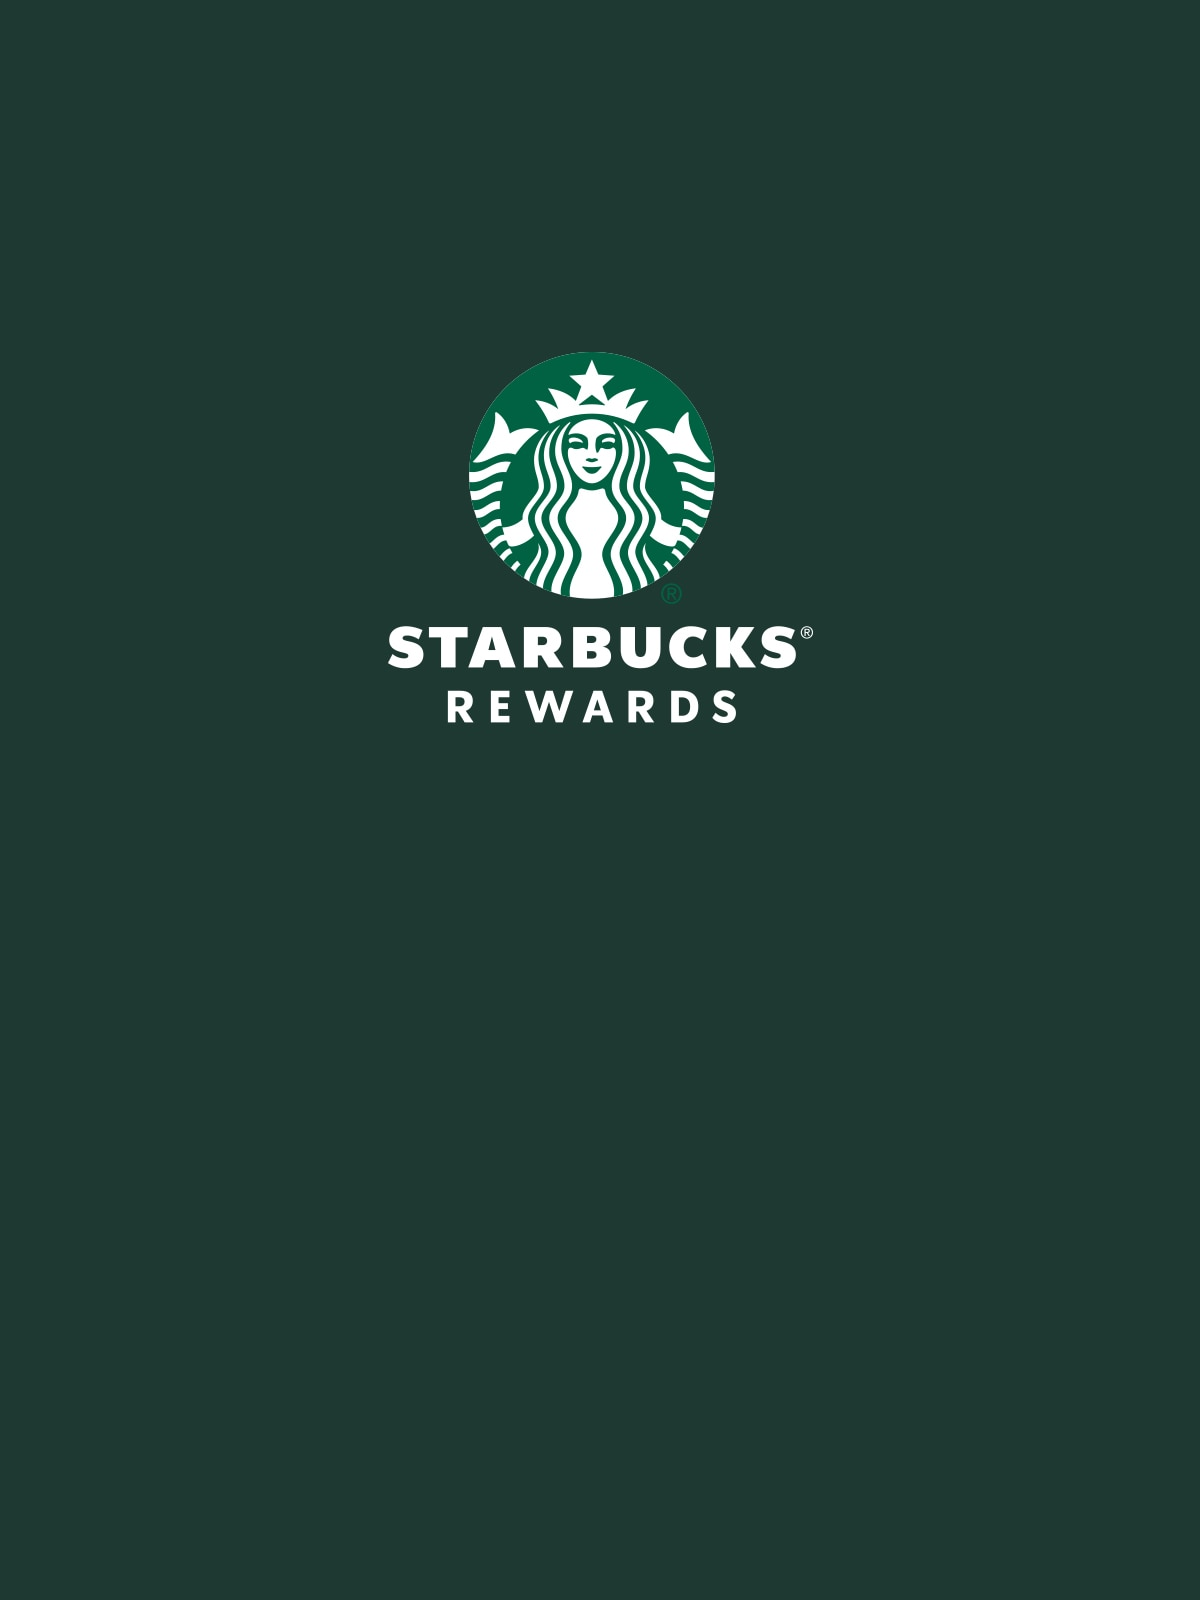 Starbucks® Rewards program: Starbucks Coffee Company